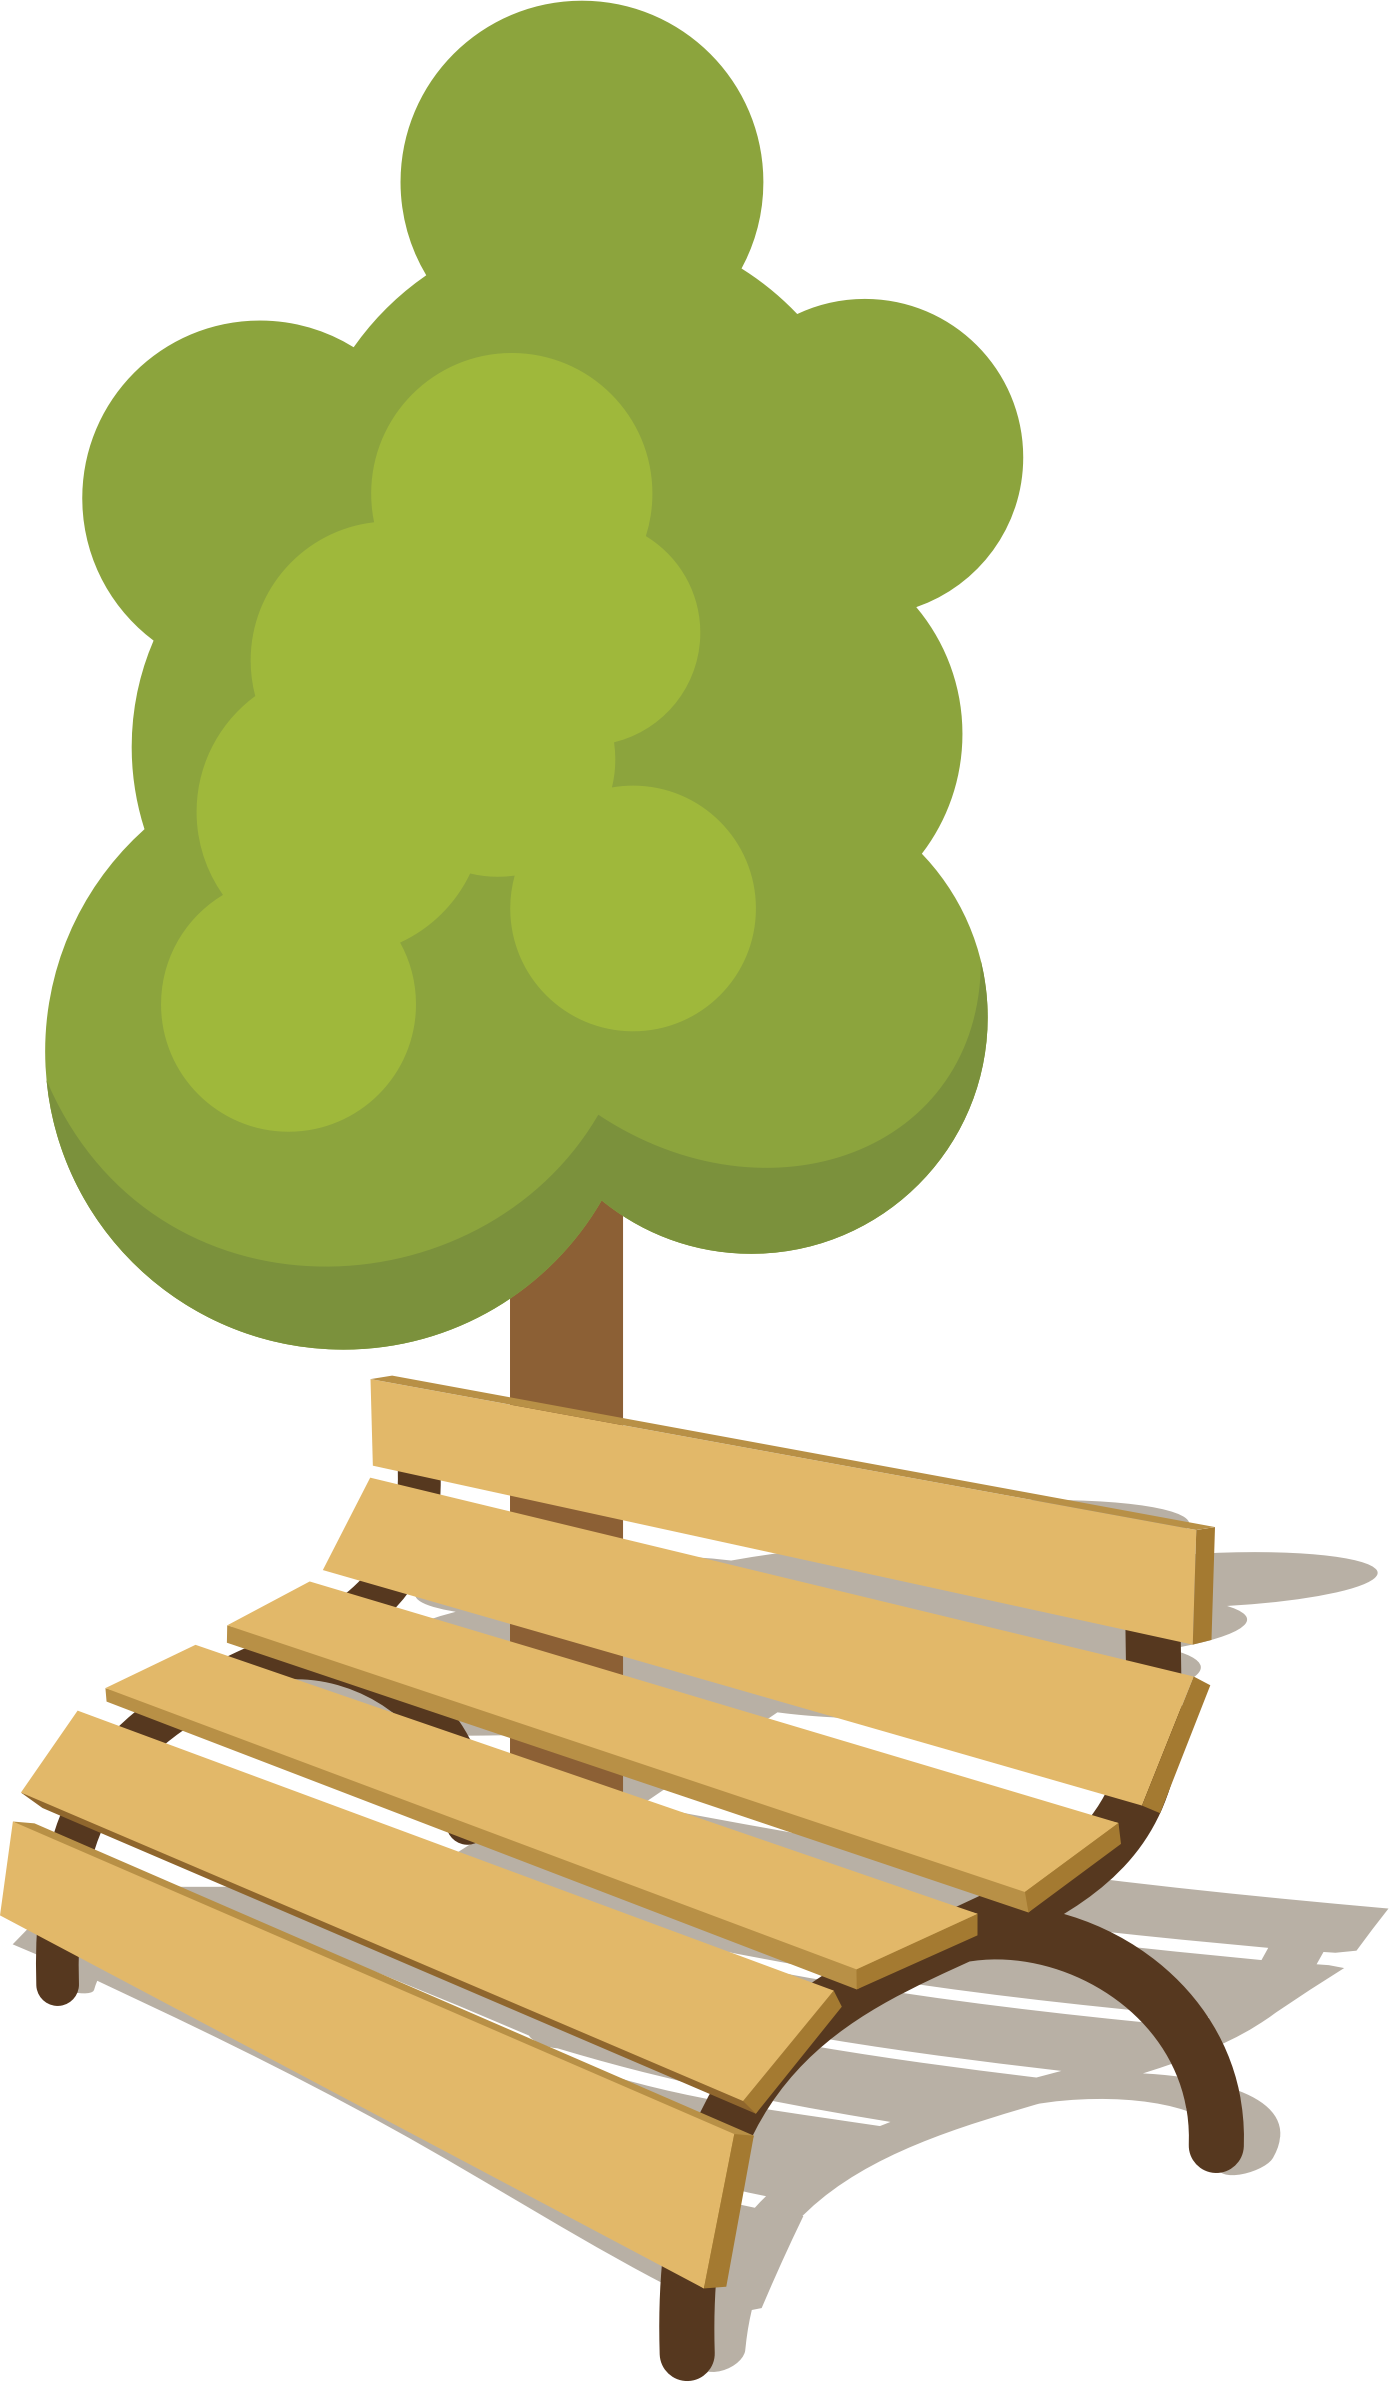 Clipart park small park. Bench big image png